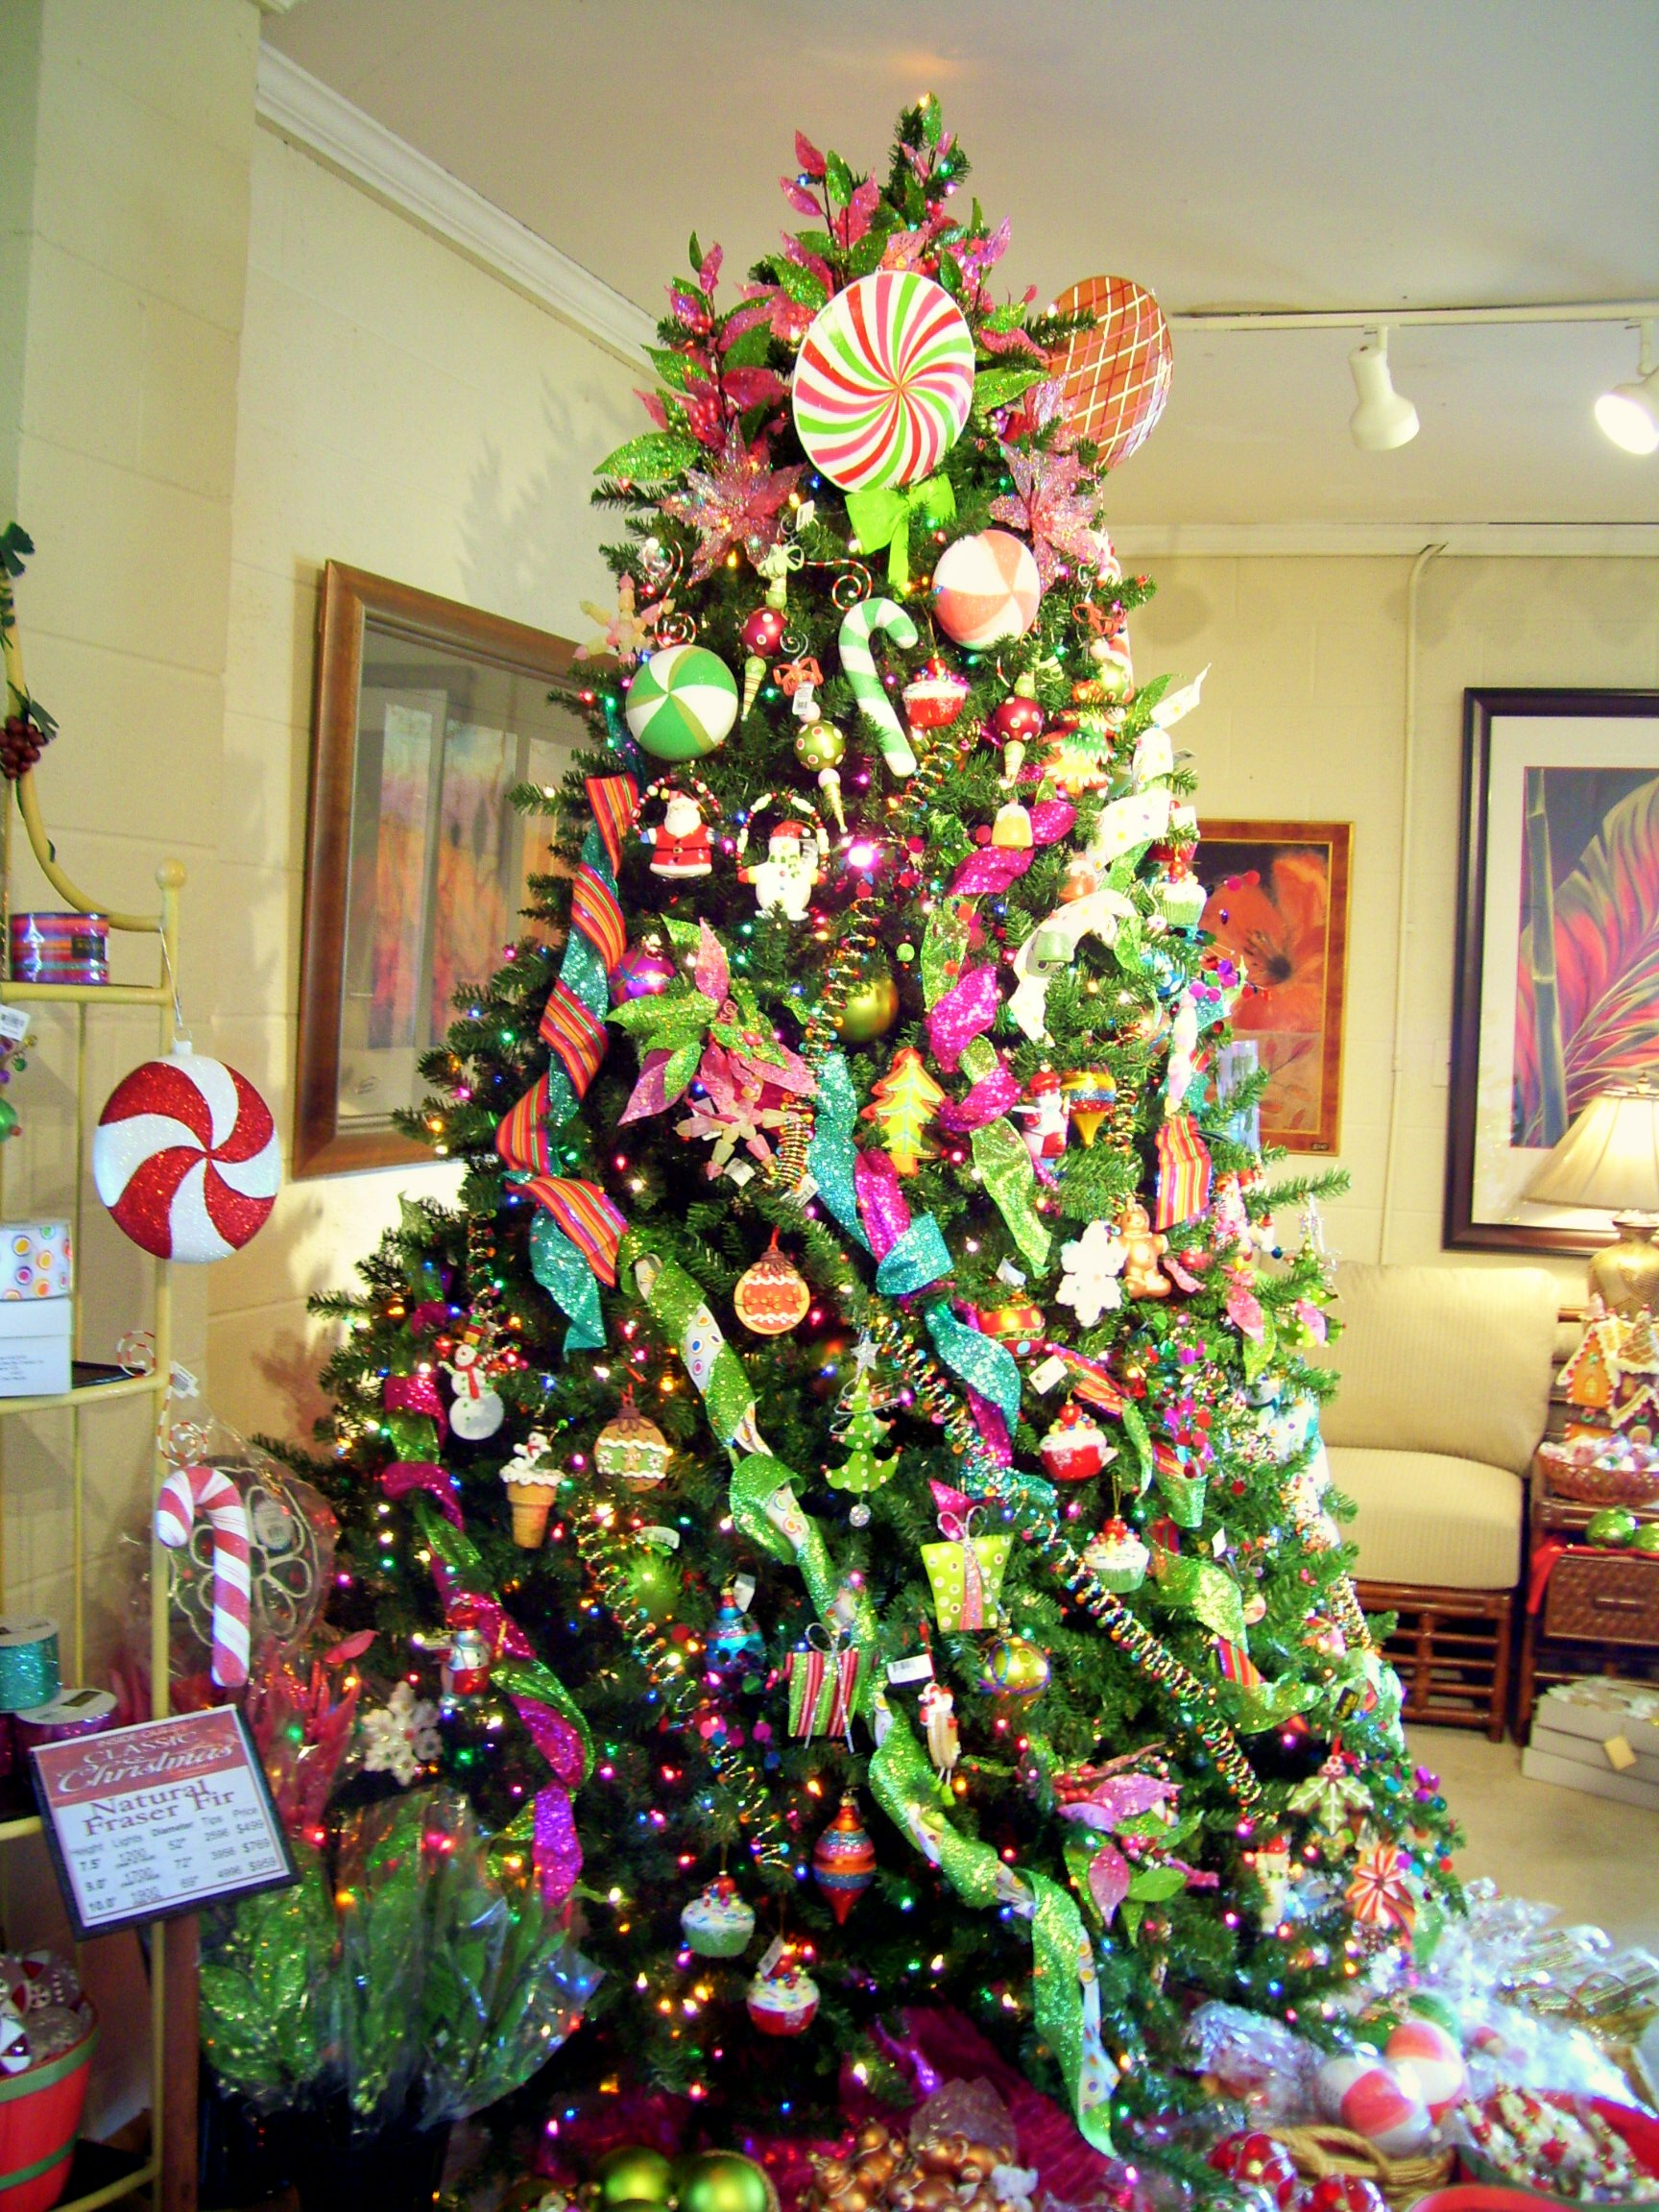 The candy-theme Christmas tree was decorated with all things sugarplum ...